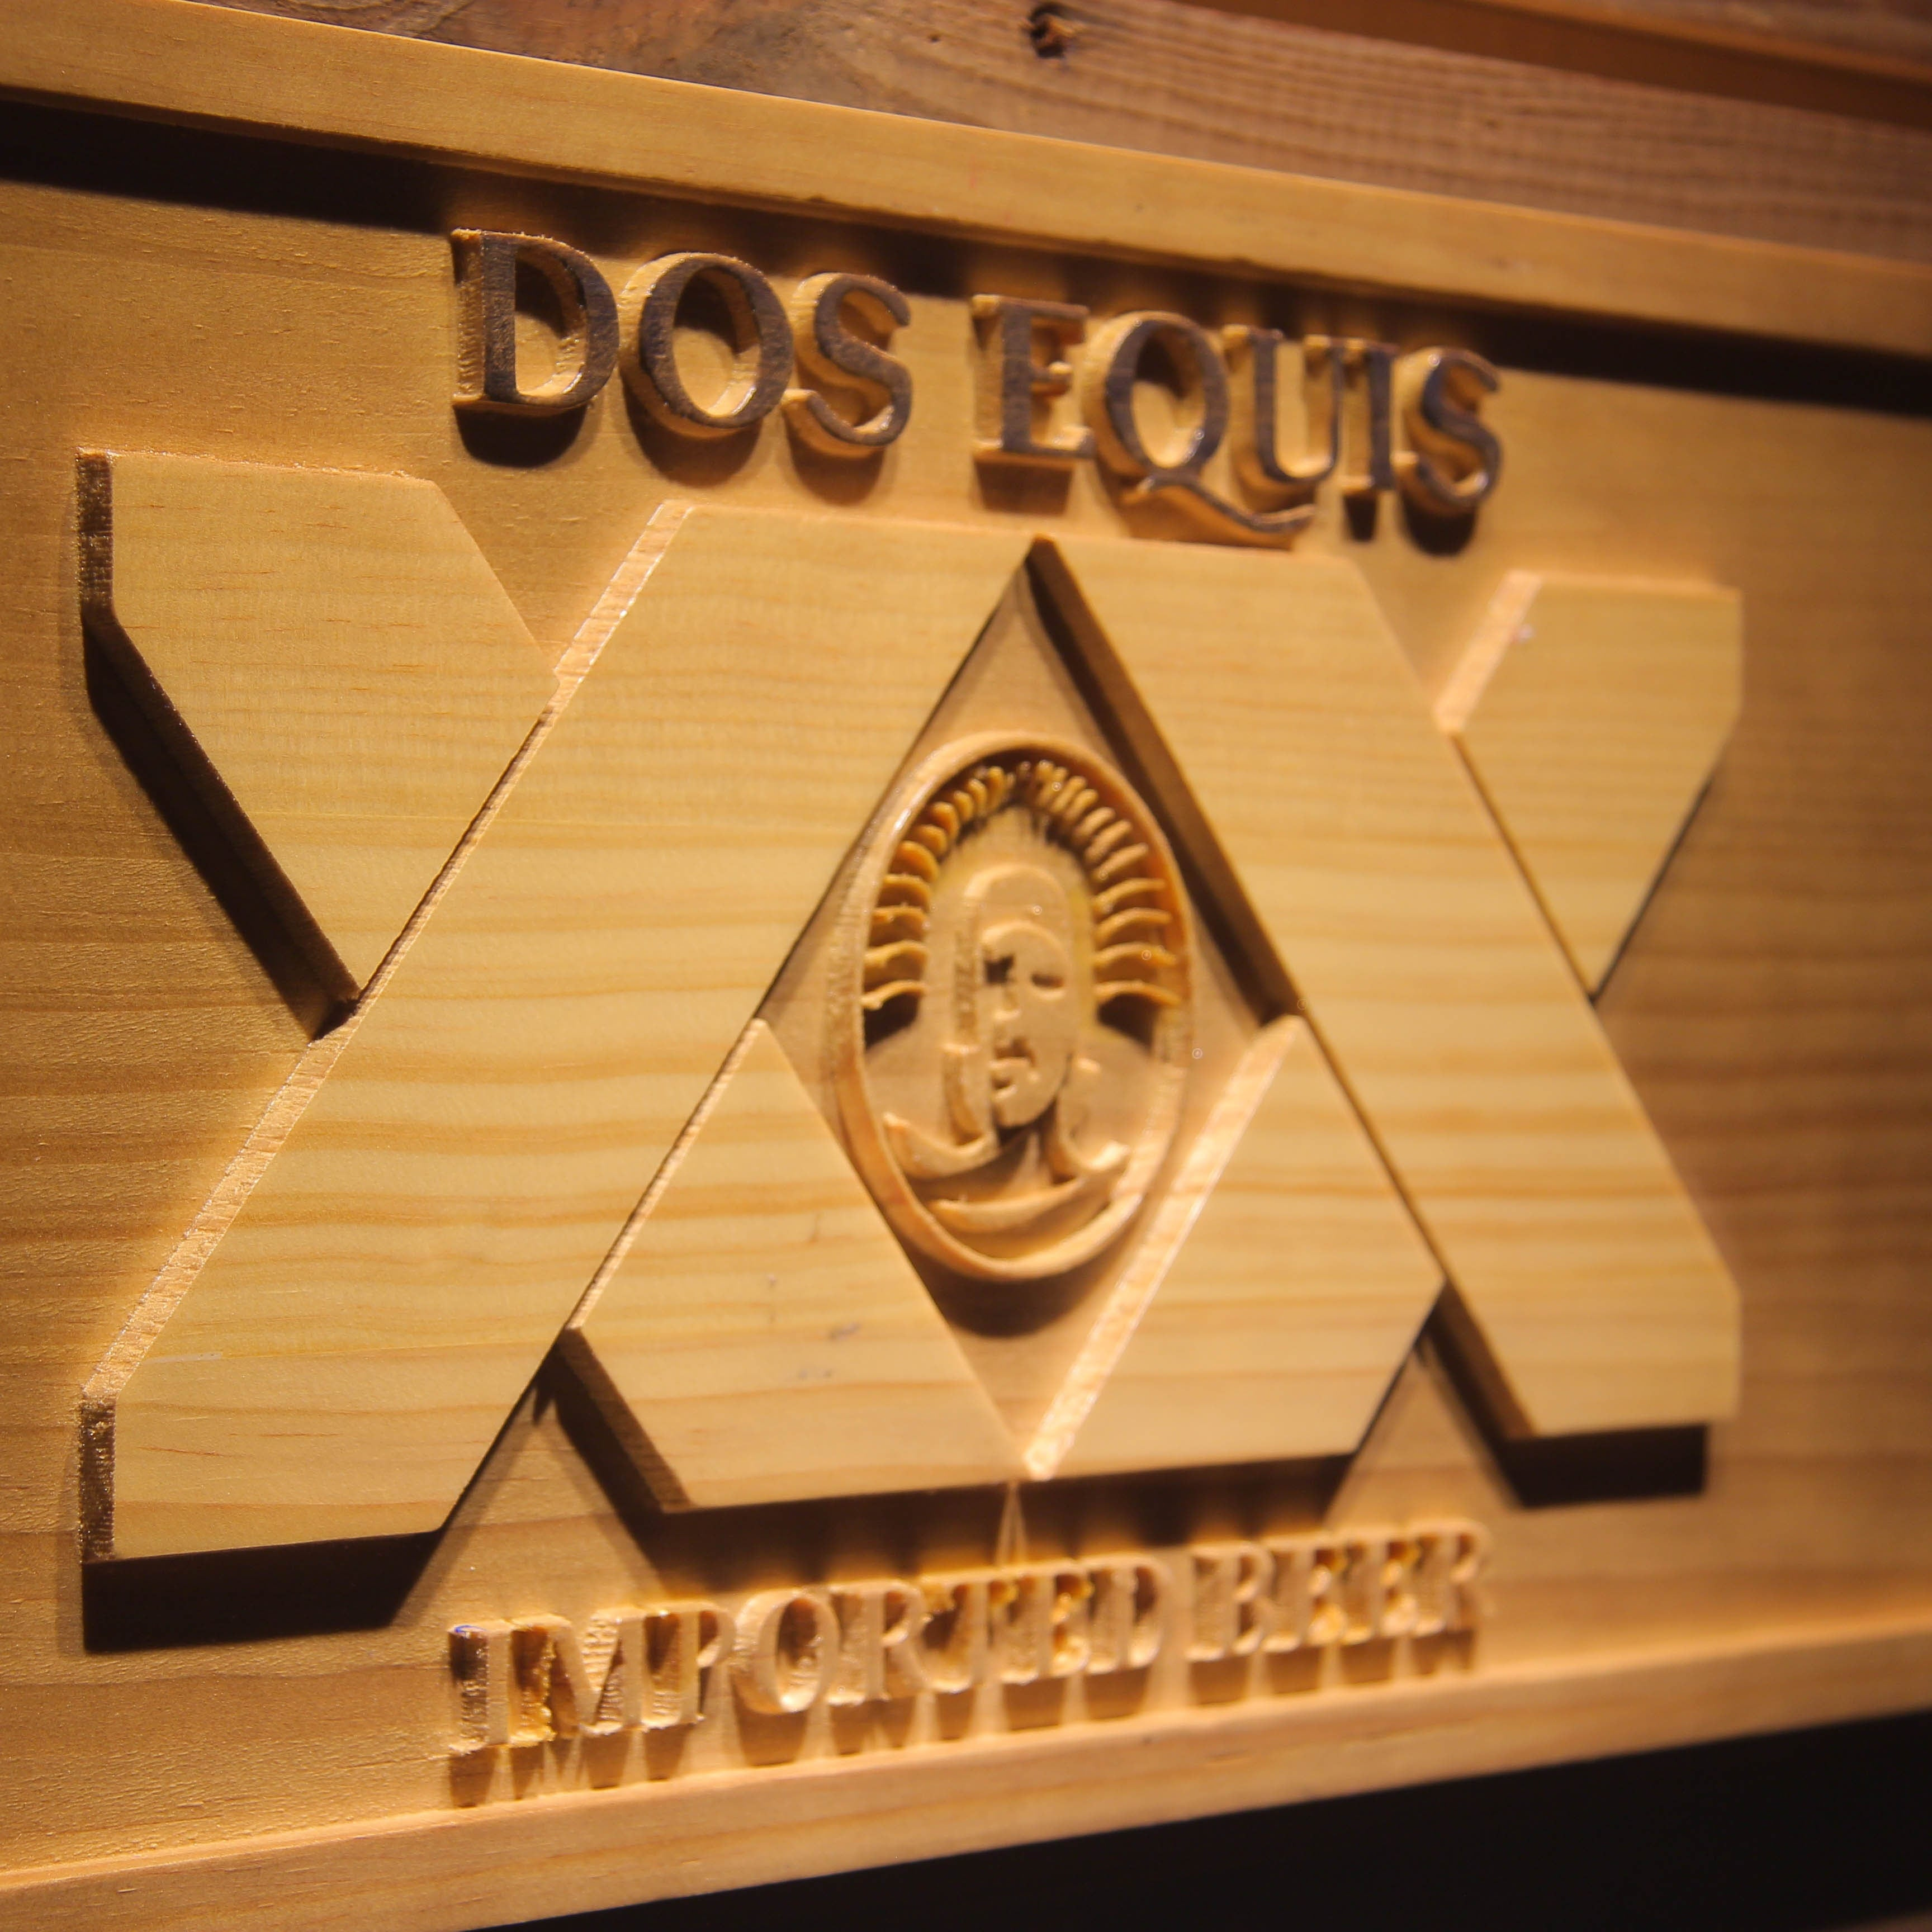 DOS EQUIS  3D Wooden Signs - WoodySigns Co.